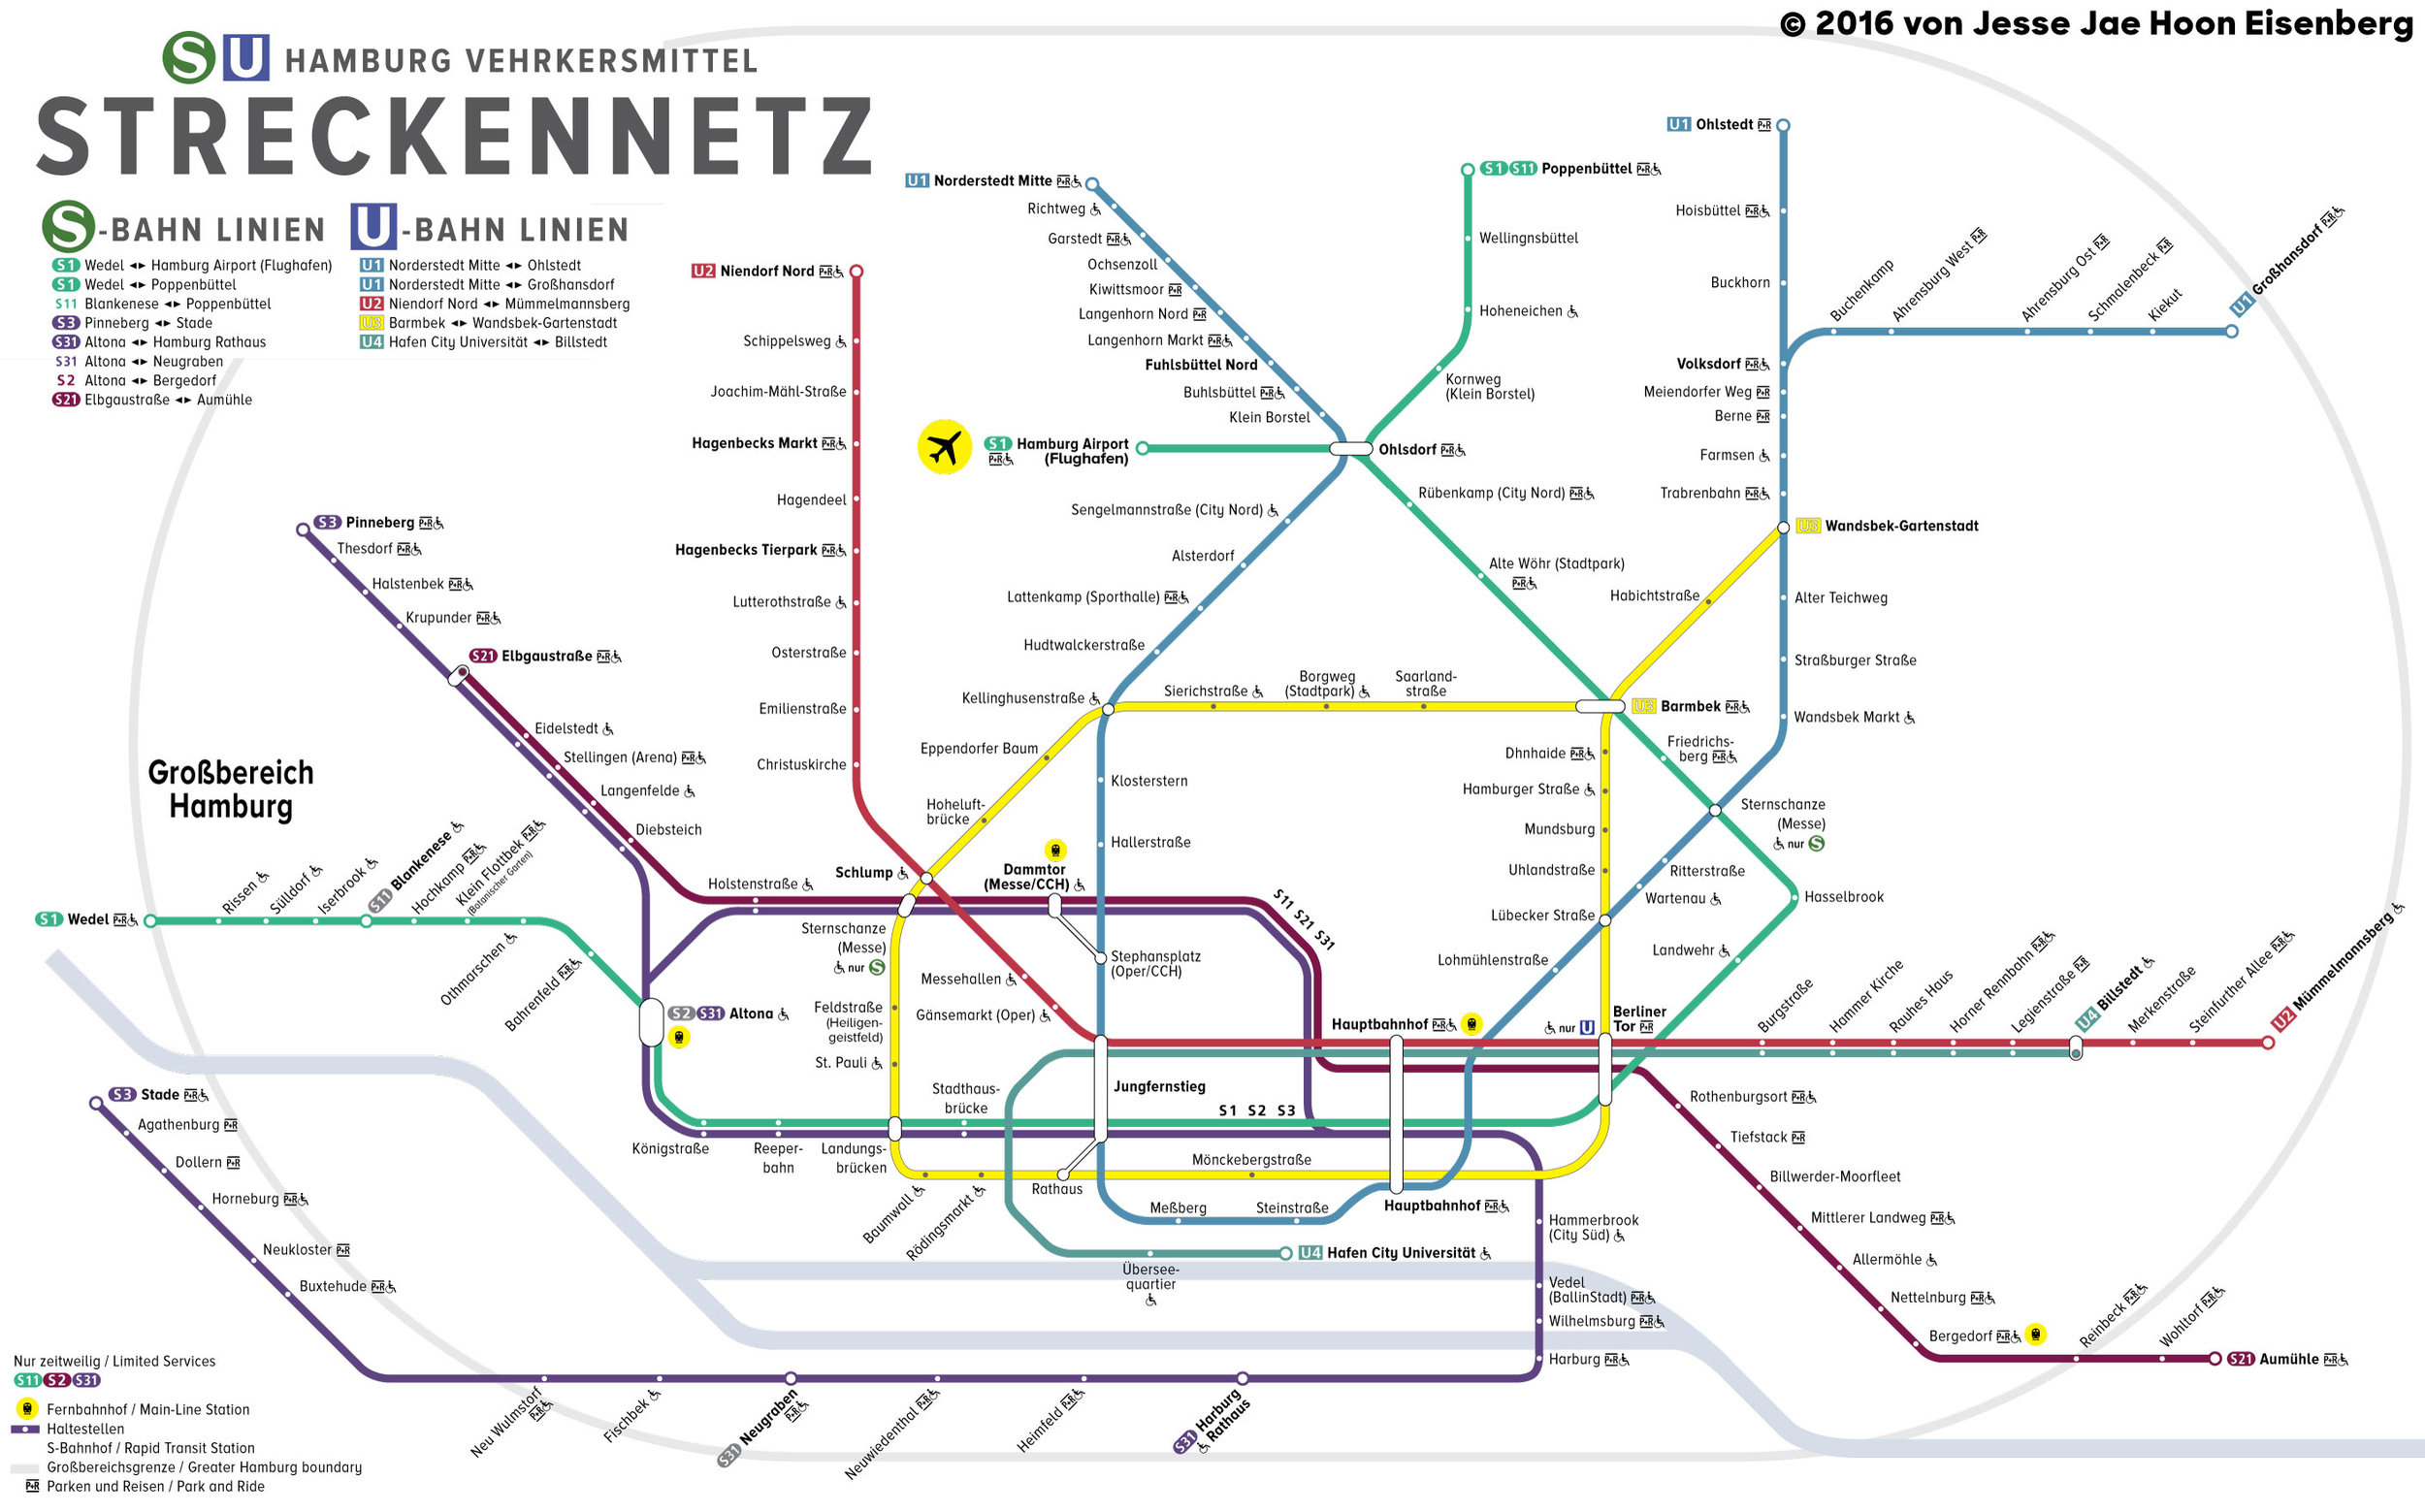 S-bahn Plan Von Hamburg Graphic Design Work Jesse Jae Hoon